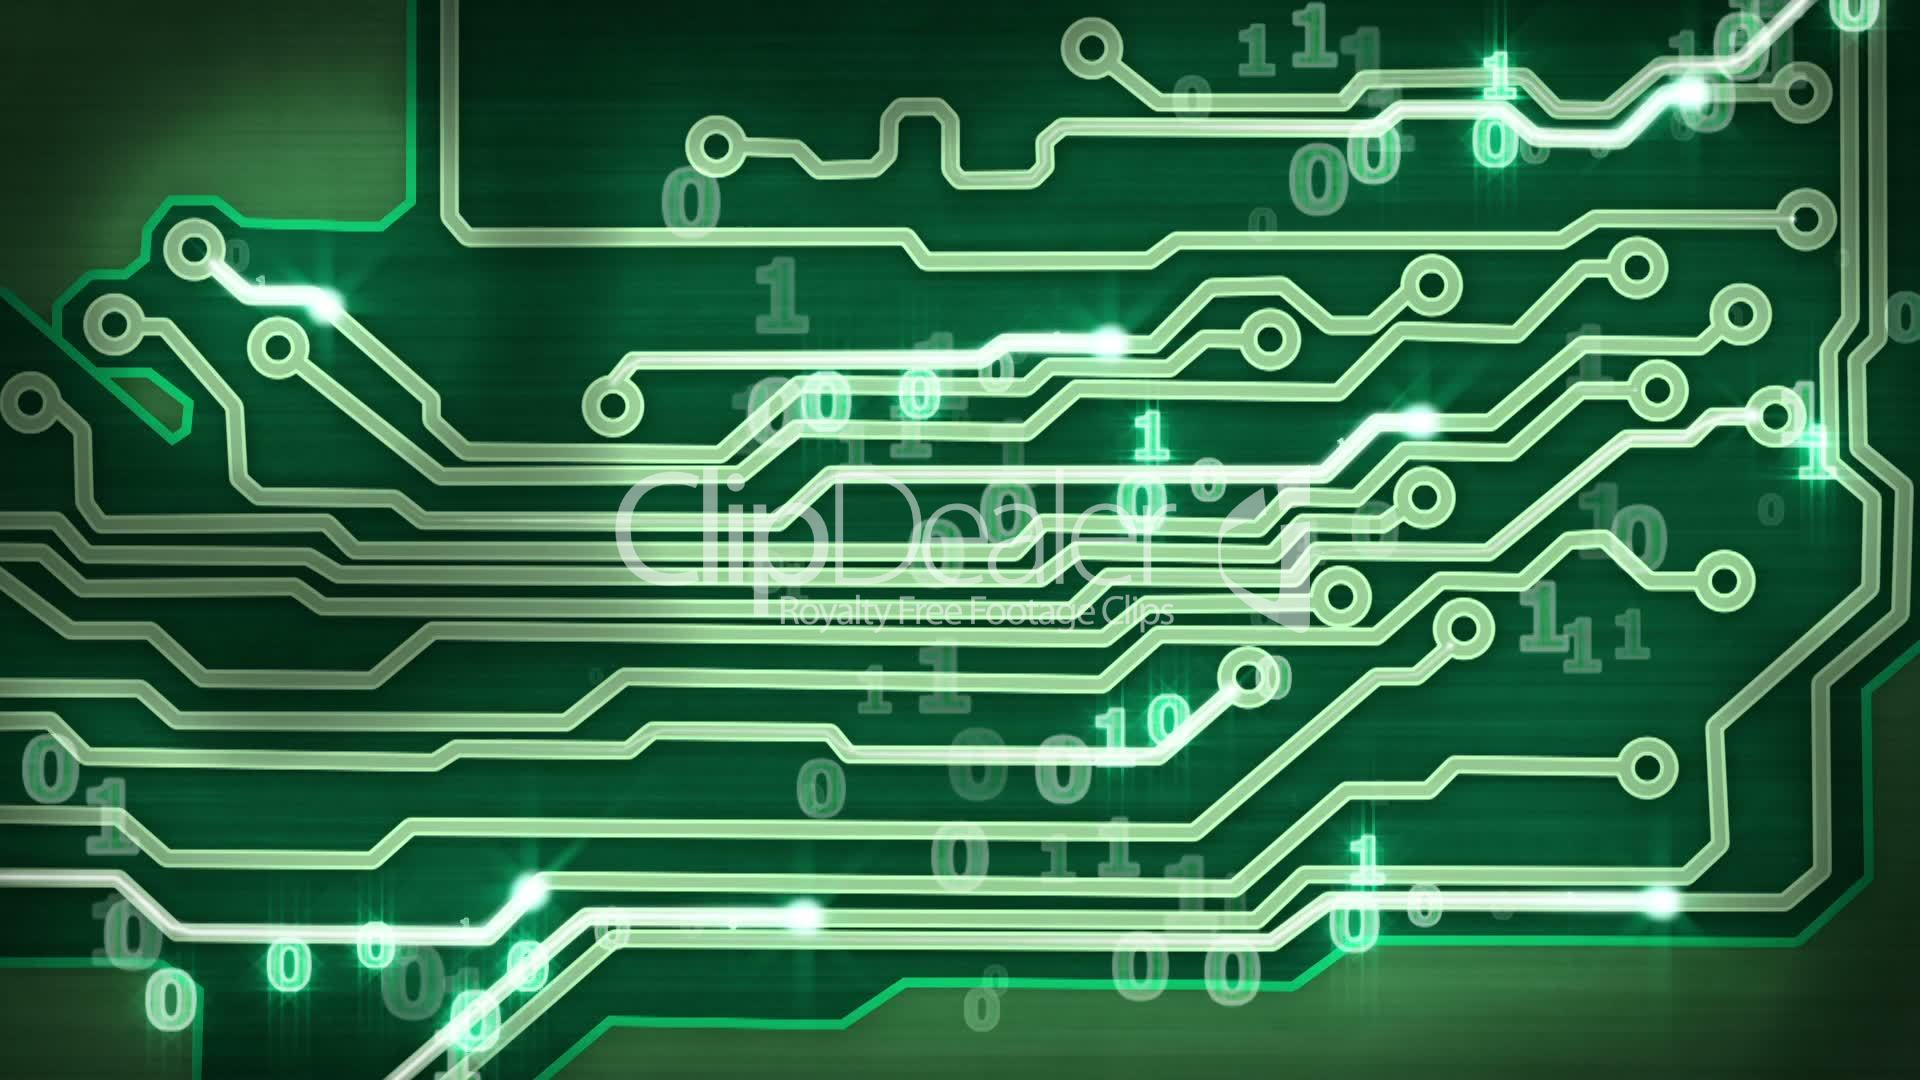 Green Circuit Board Providing Signals Loop Hi Tech Background Graphic Industrial Black Industry